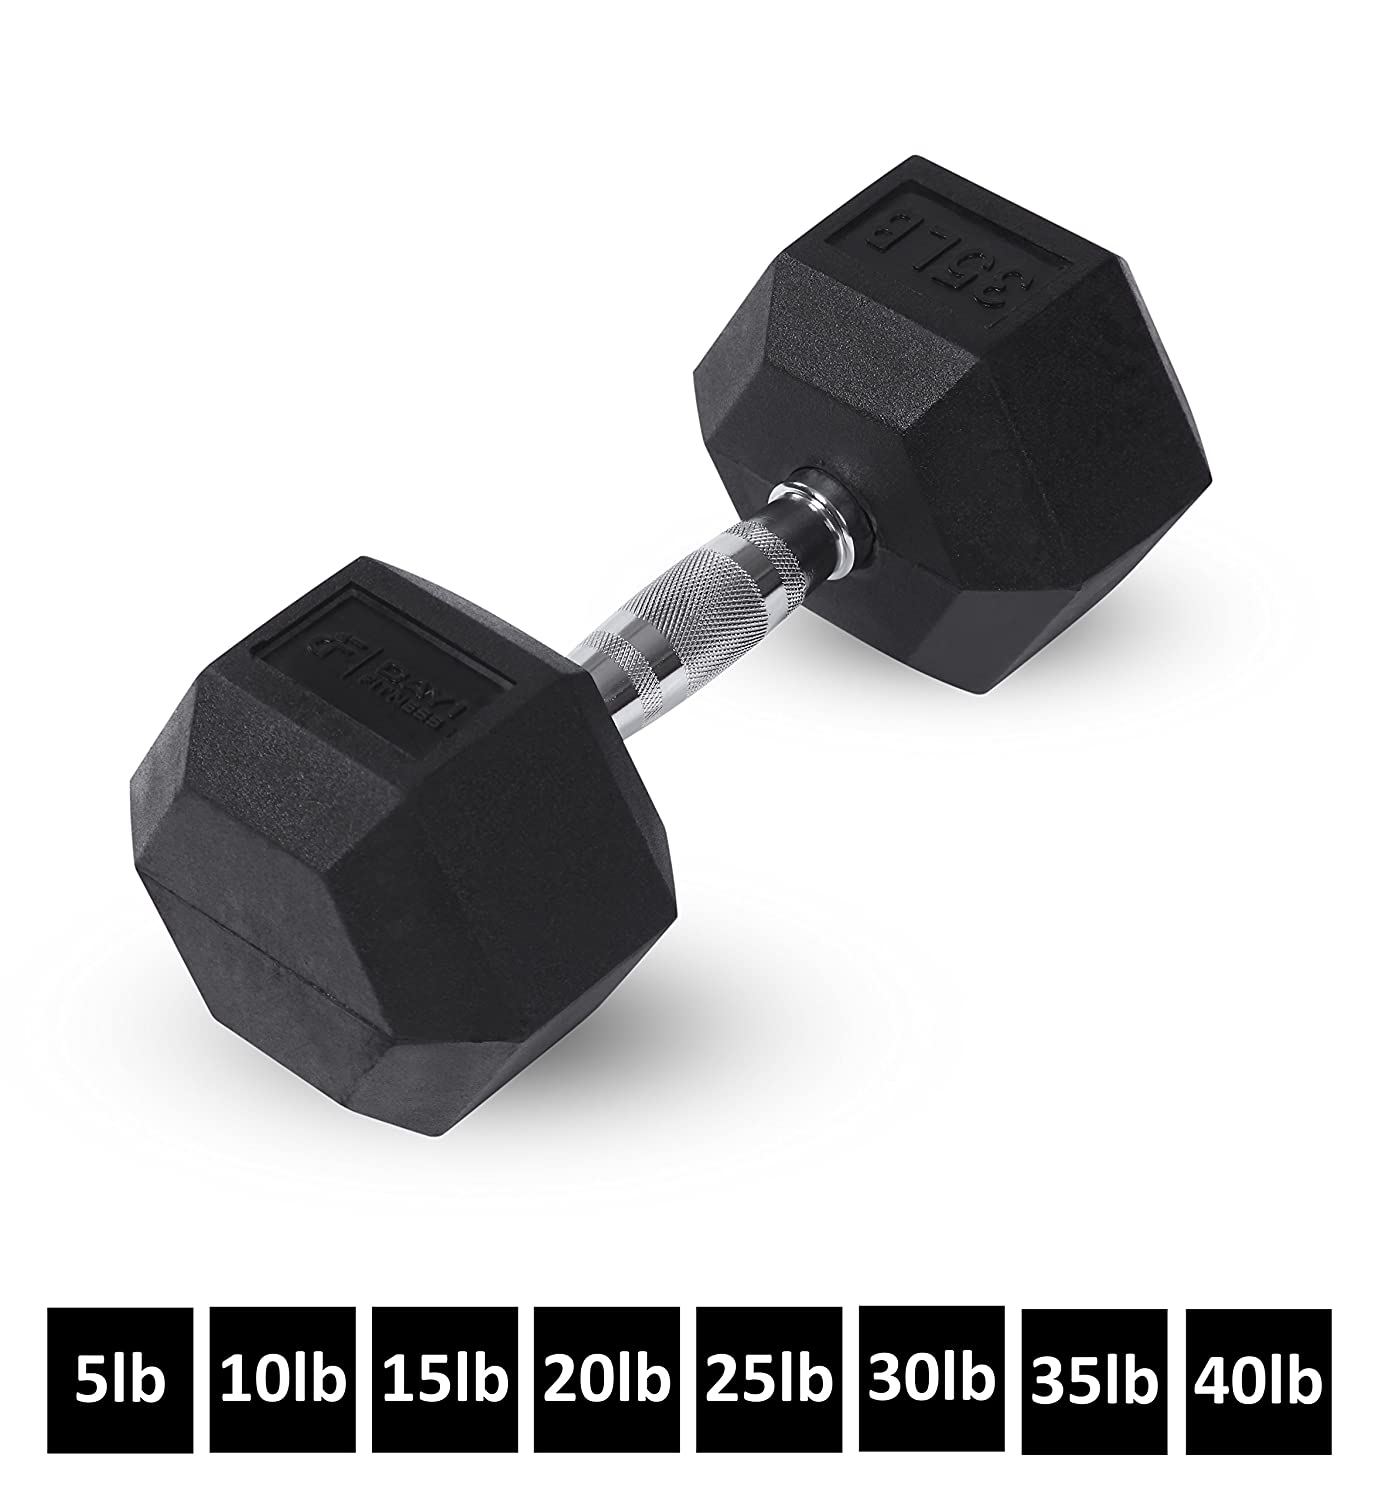 Day 1 Fitness Rubber Hex Dumbbell Shaped Heads to Prevent Rolling and Injury - Ergonomic Hand Weights for Exercise, Therapy, Building Muscle, Strength and Weight Training - 10 lb Single D1RH10S